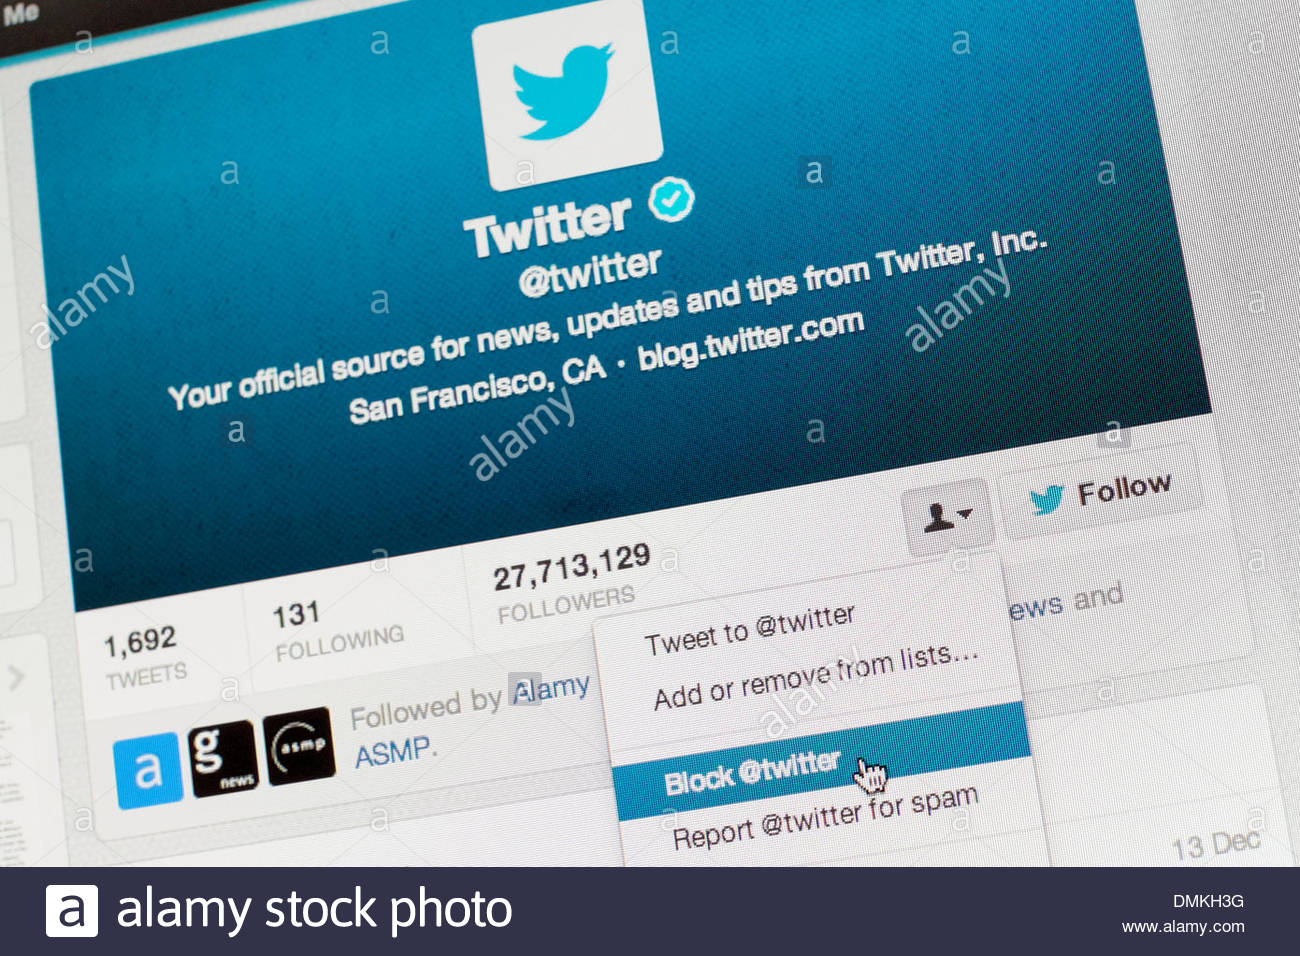 """Thursday 12 December 2013: Twitter introduced, and later in the day withdrew, a change to its """"blocking"""" policy Stock Photo"""